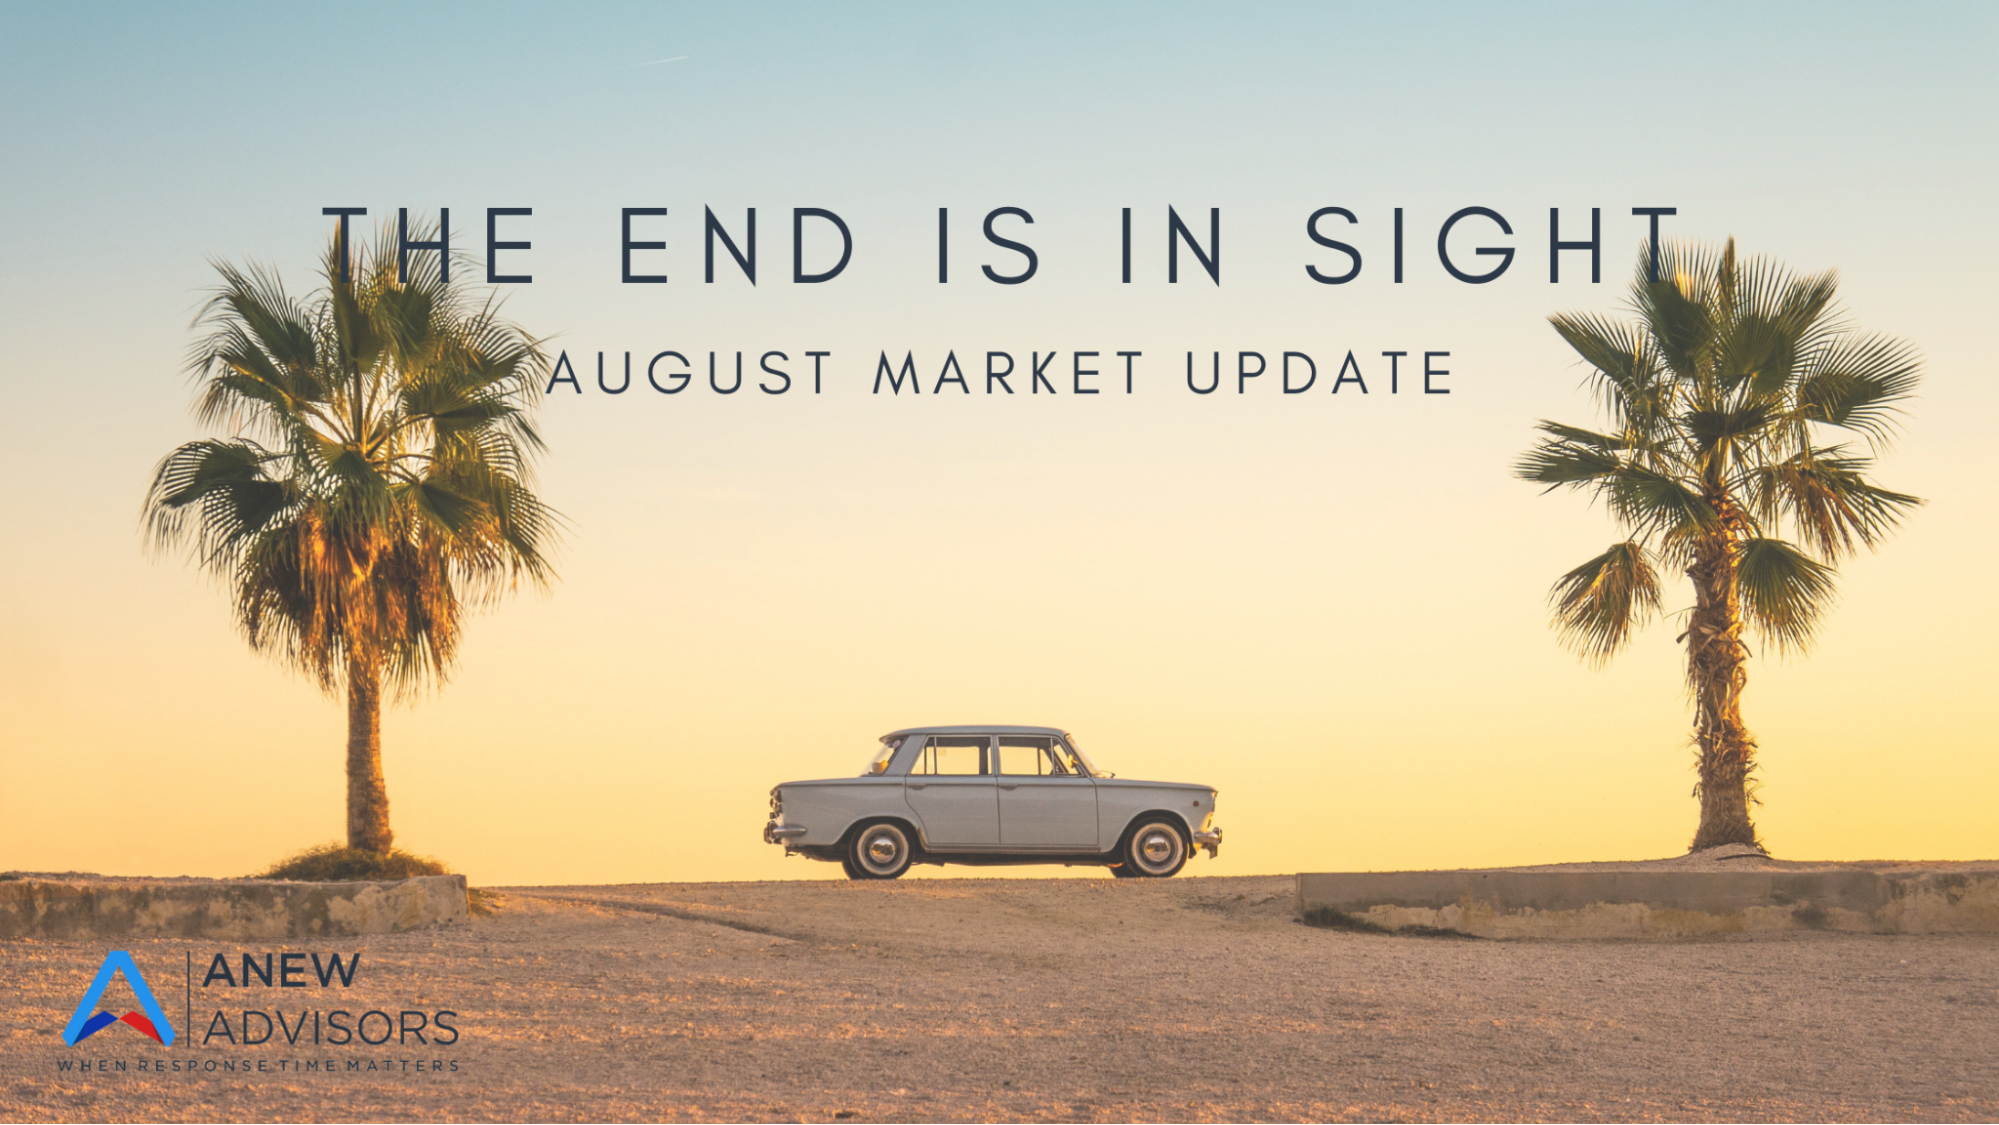 The End is in Sight: August Market Update Thumbnail